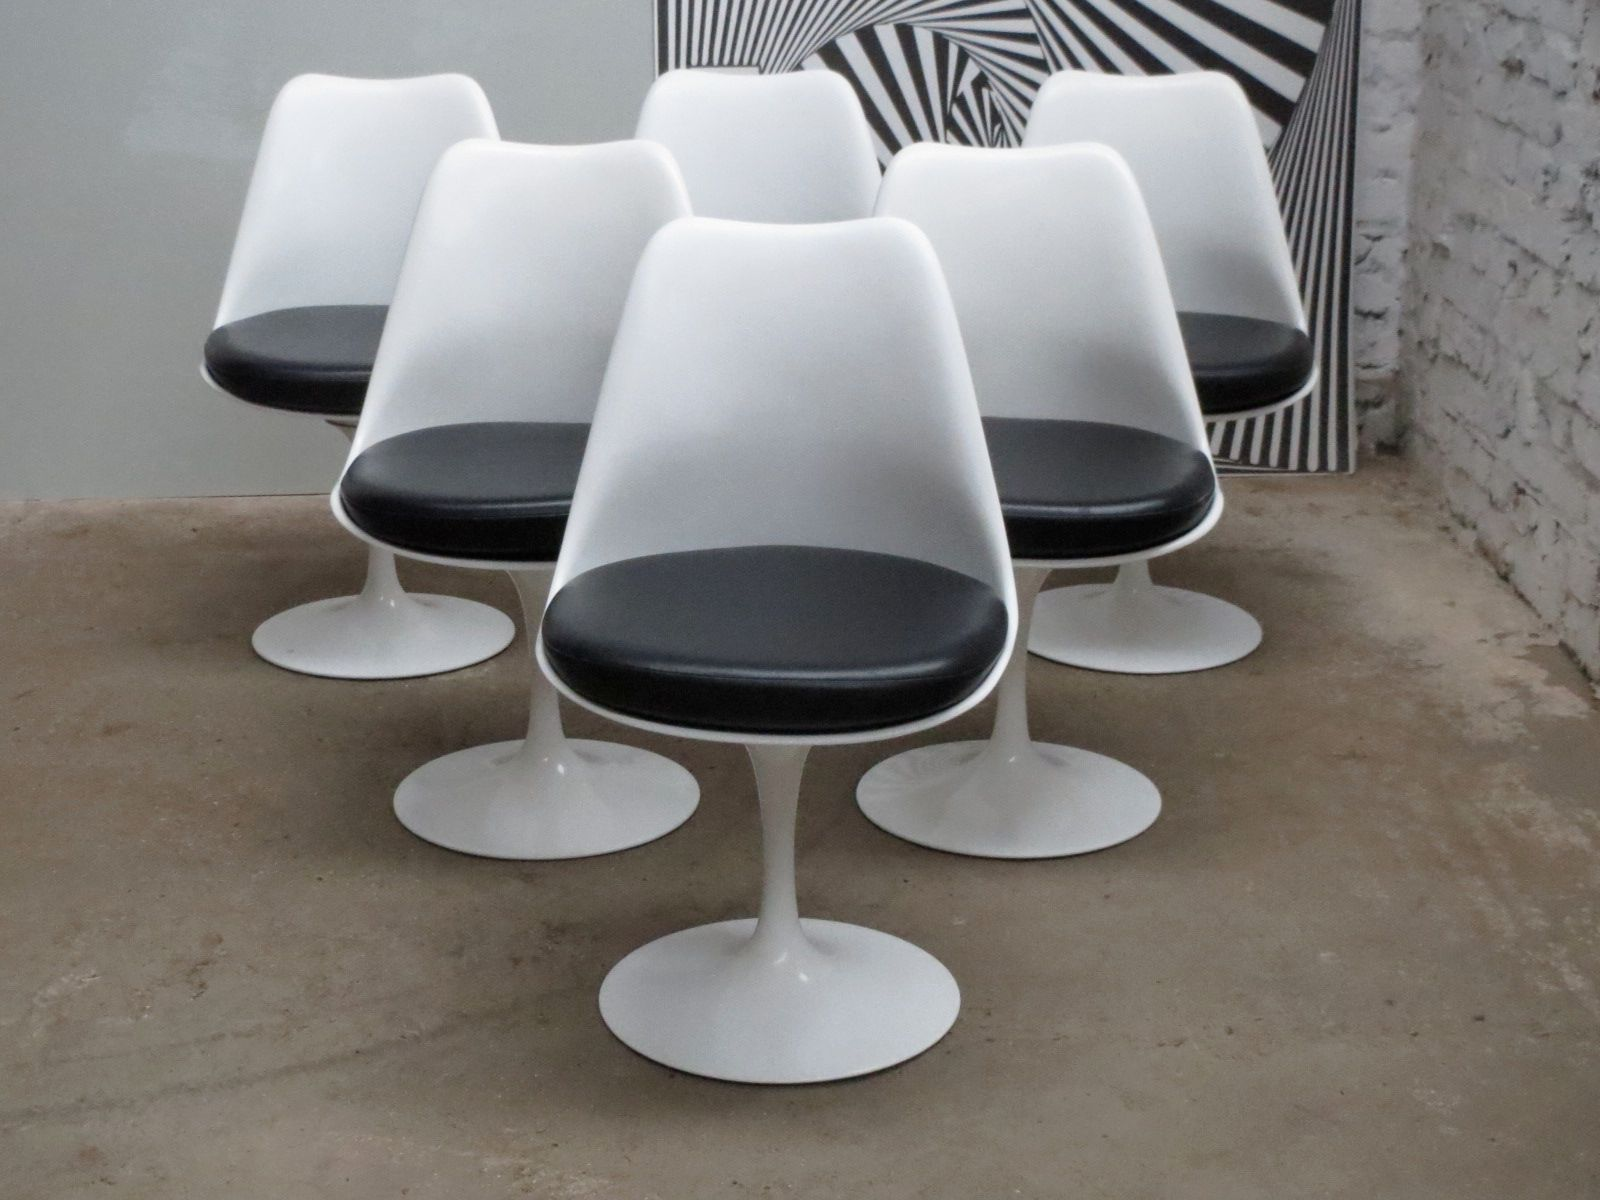 Swivel Tulip Chairs by Eero Saarinen for Knoll International, 1980s, Set of 6...